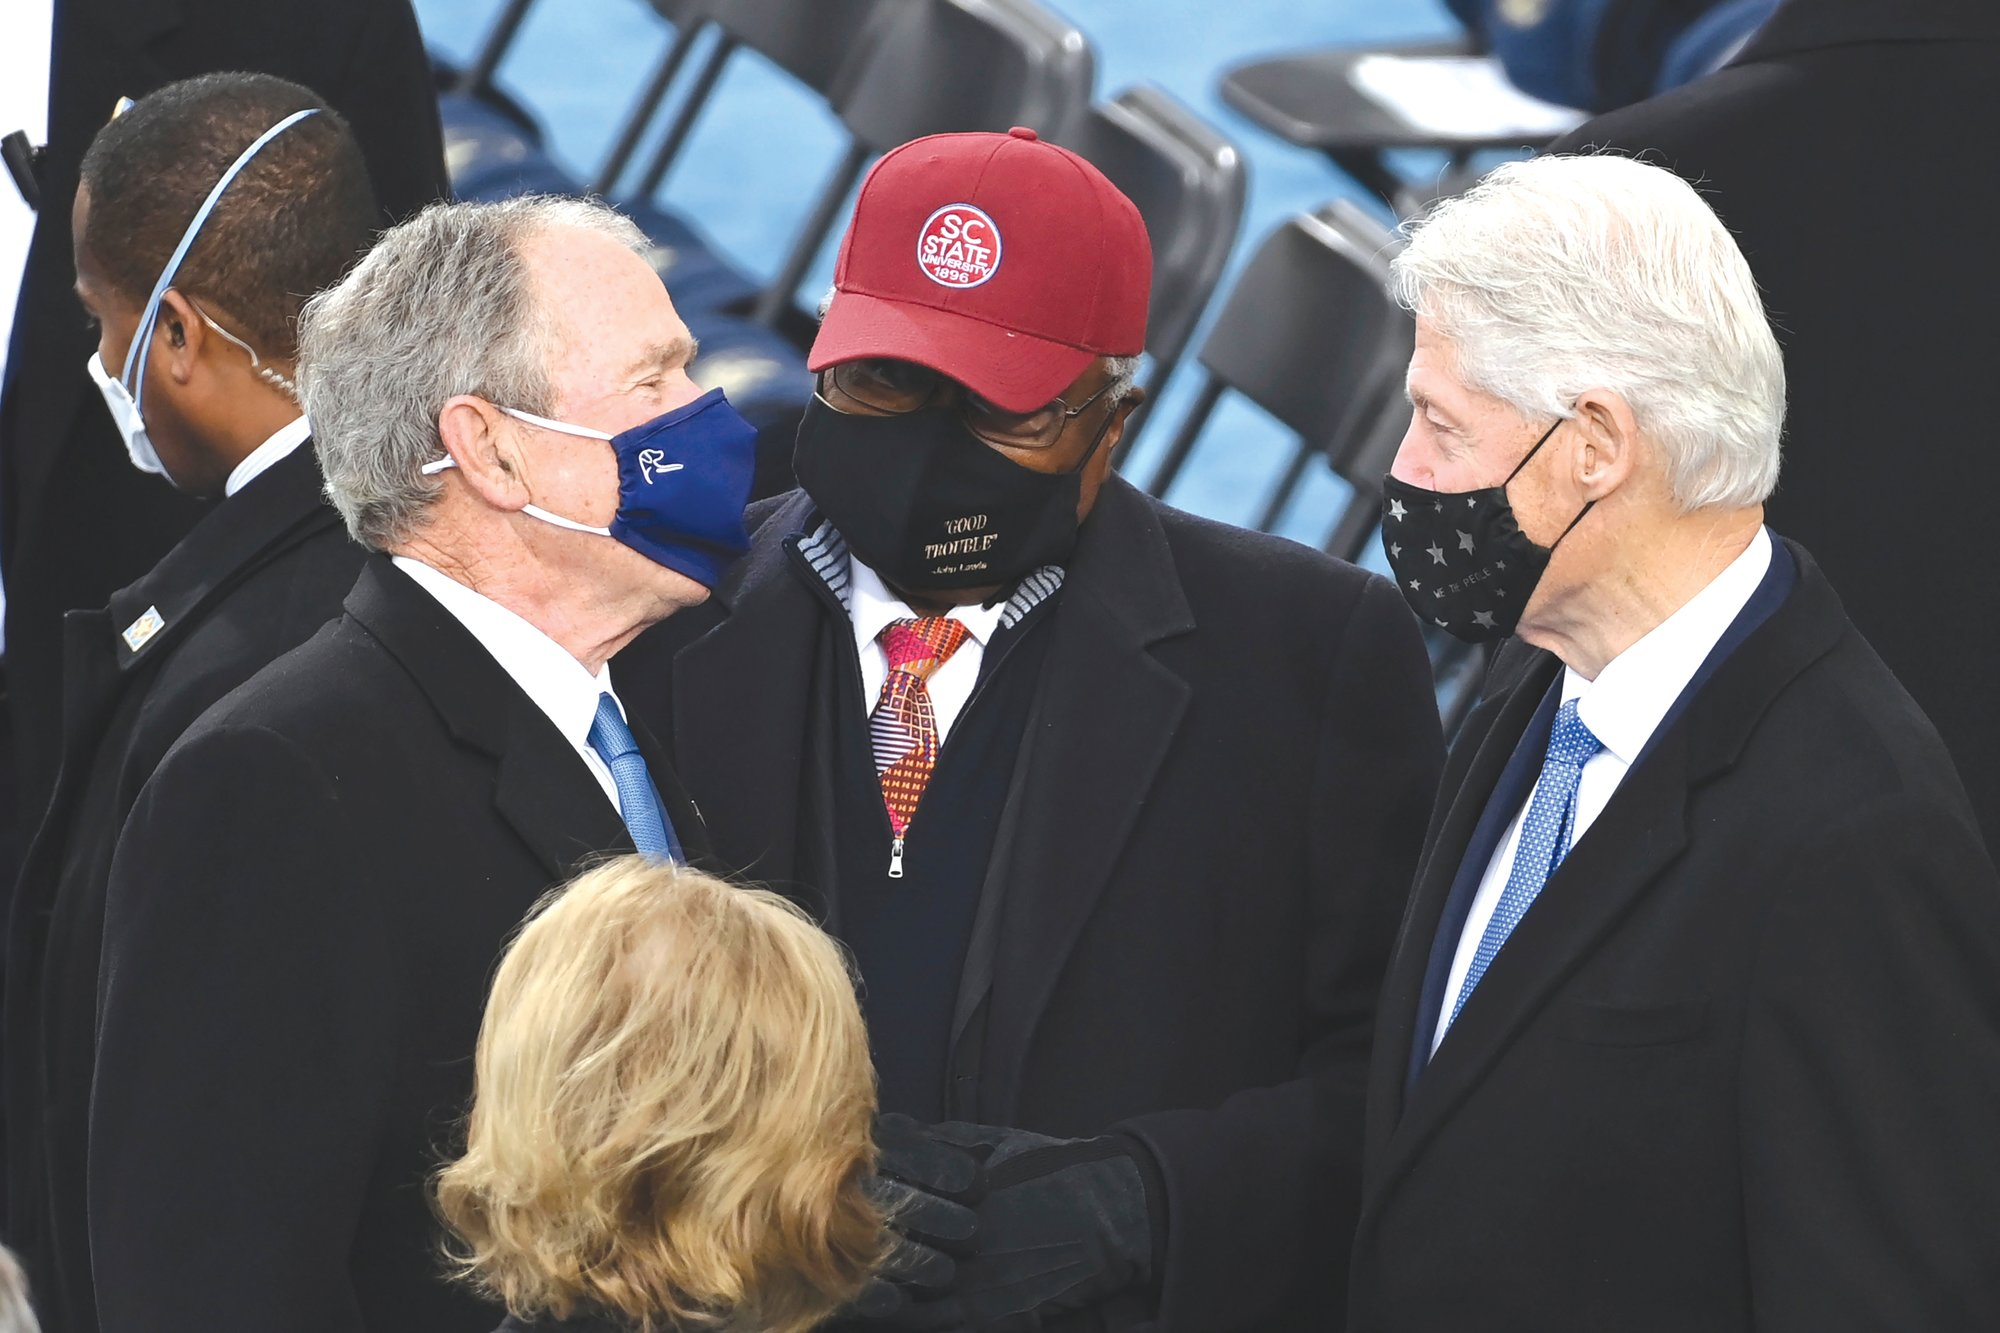 Former President George W. Bush; House Majority Whip Jim Clyburn, D-S.C. and native of Sumter; and former President Bill Clinton  are seen ahead of President-elect Joe Biden's inauguration ceremony Wednesday in Washington.